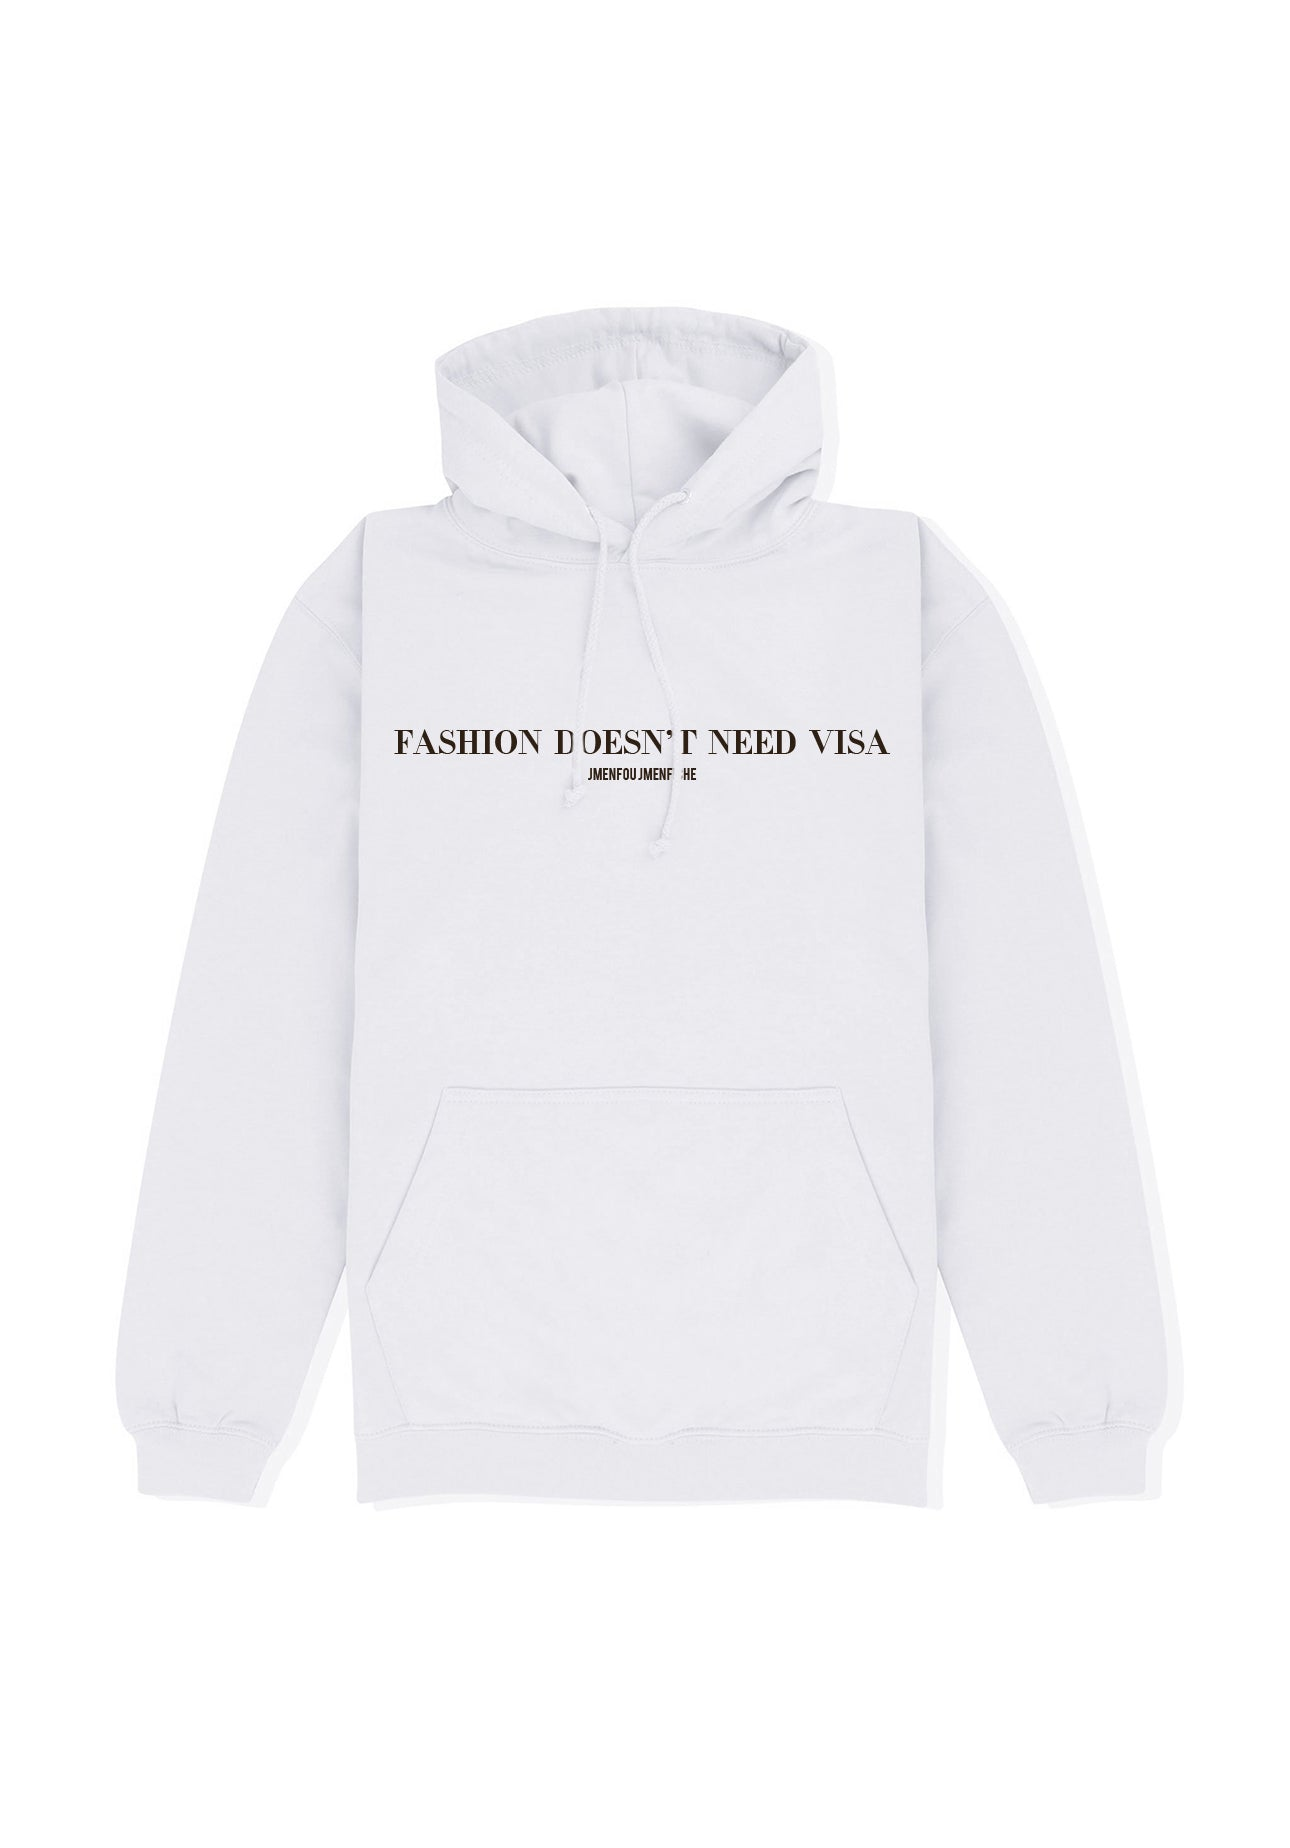 HOODIE FDNV WHITE FONT